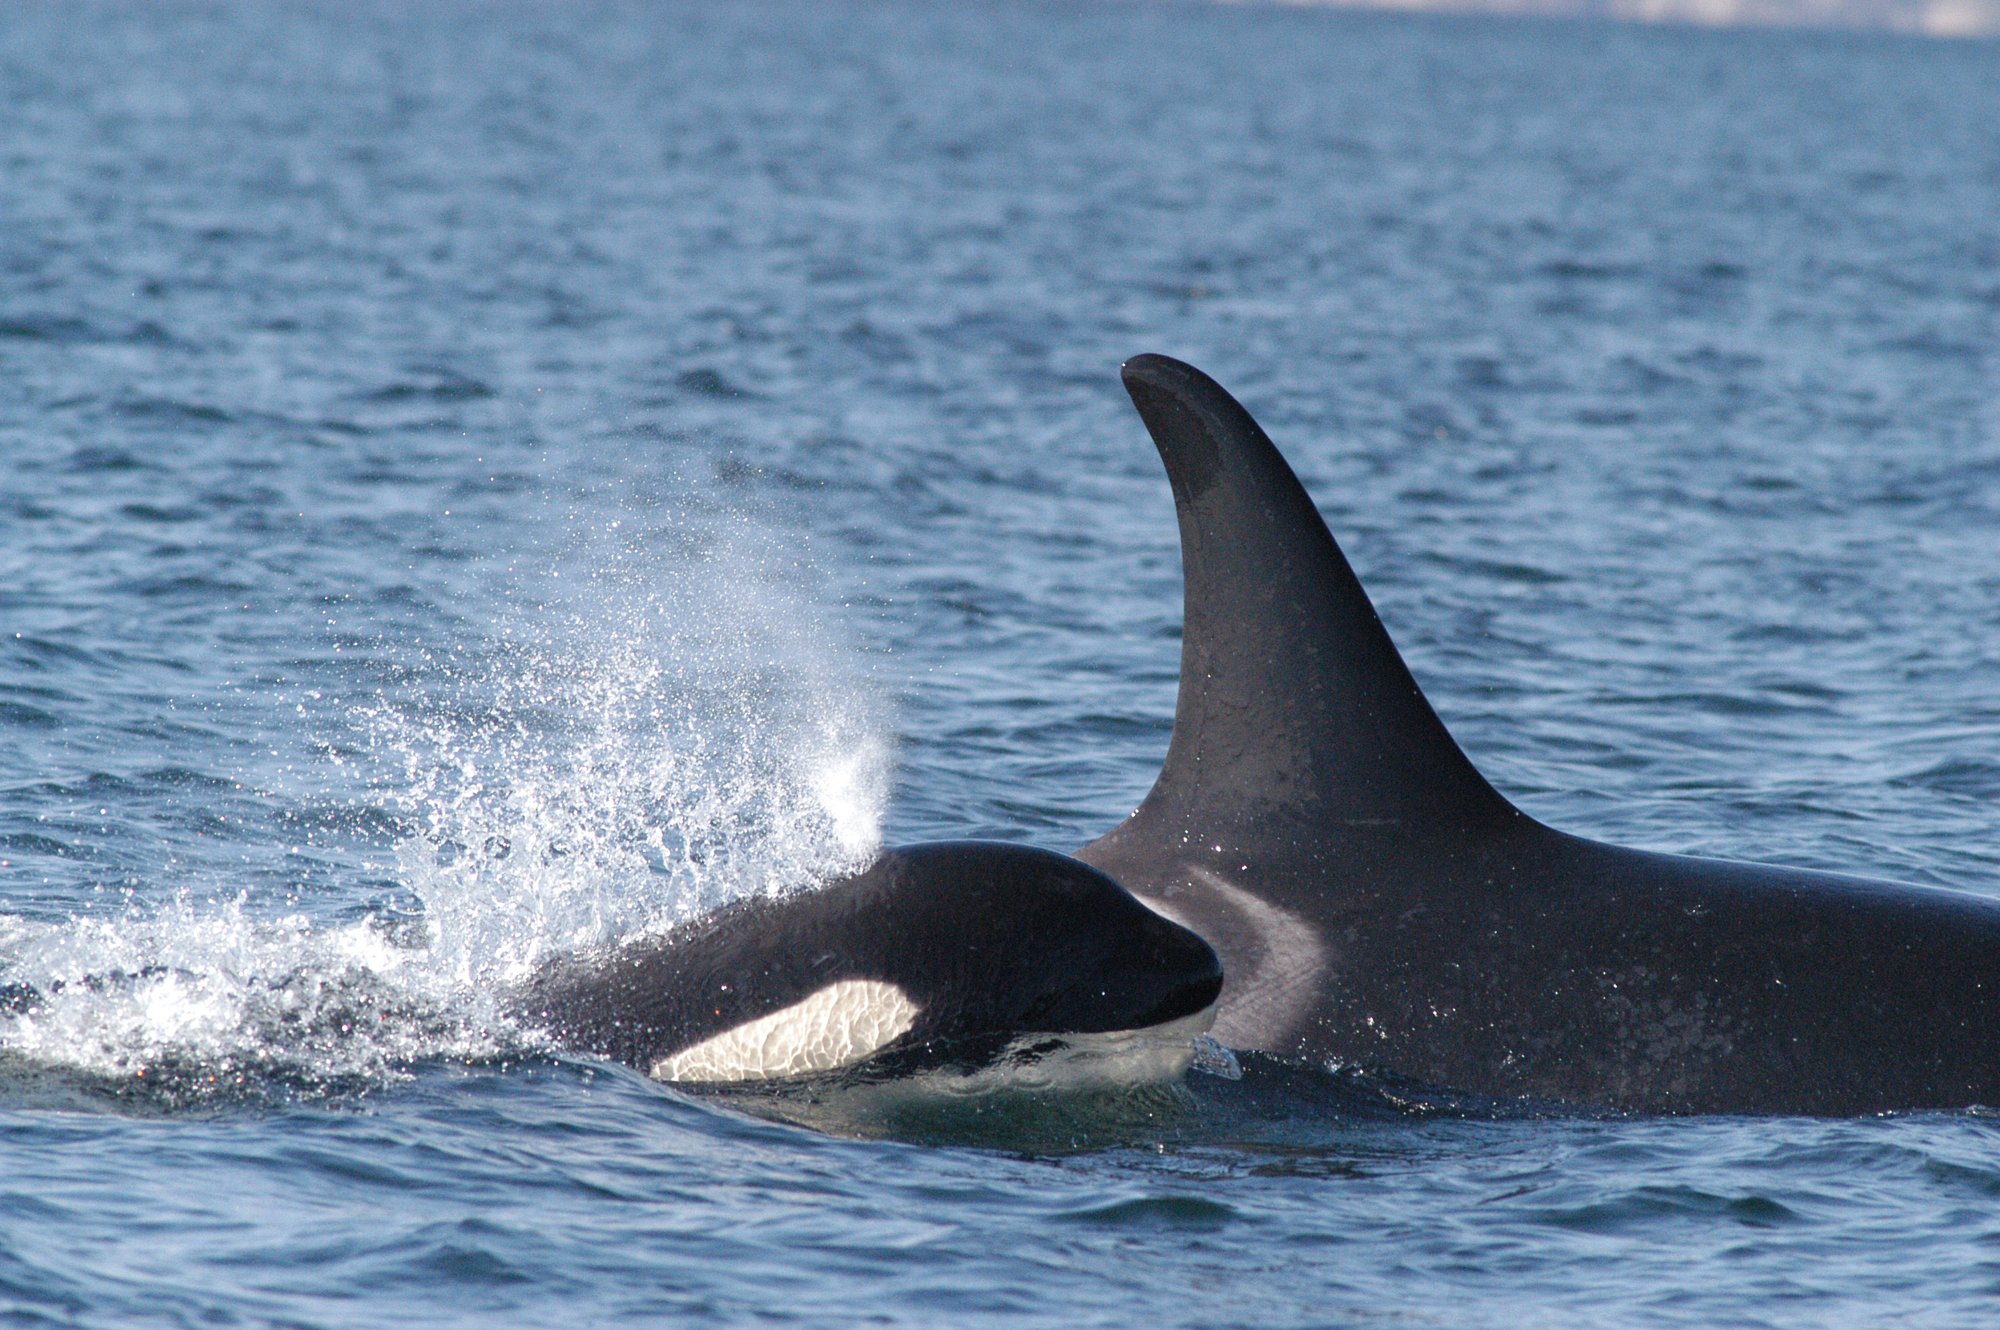 Canada S Latest Pipeline Could Drive Endangered Killer Whales To